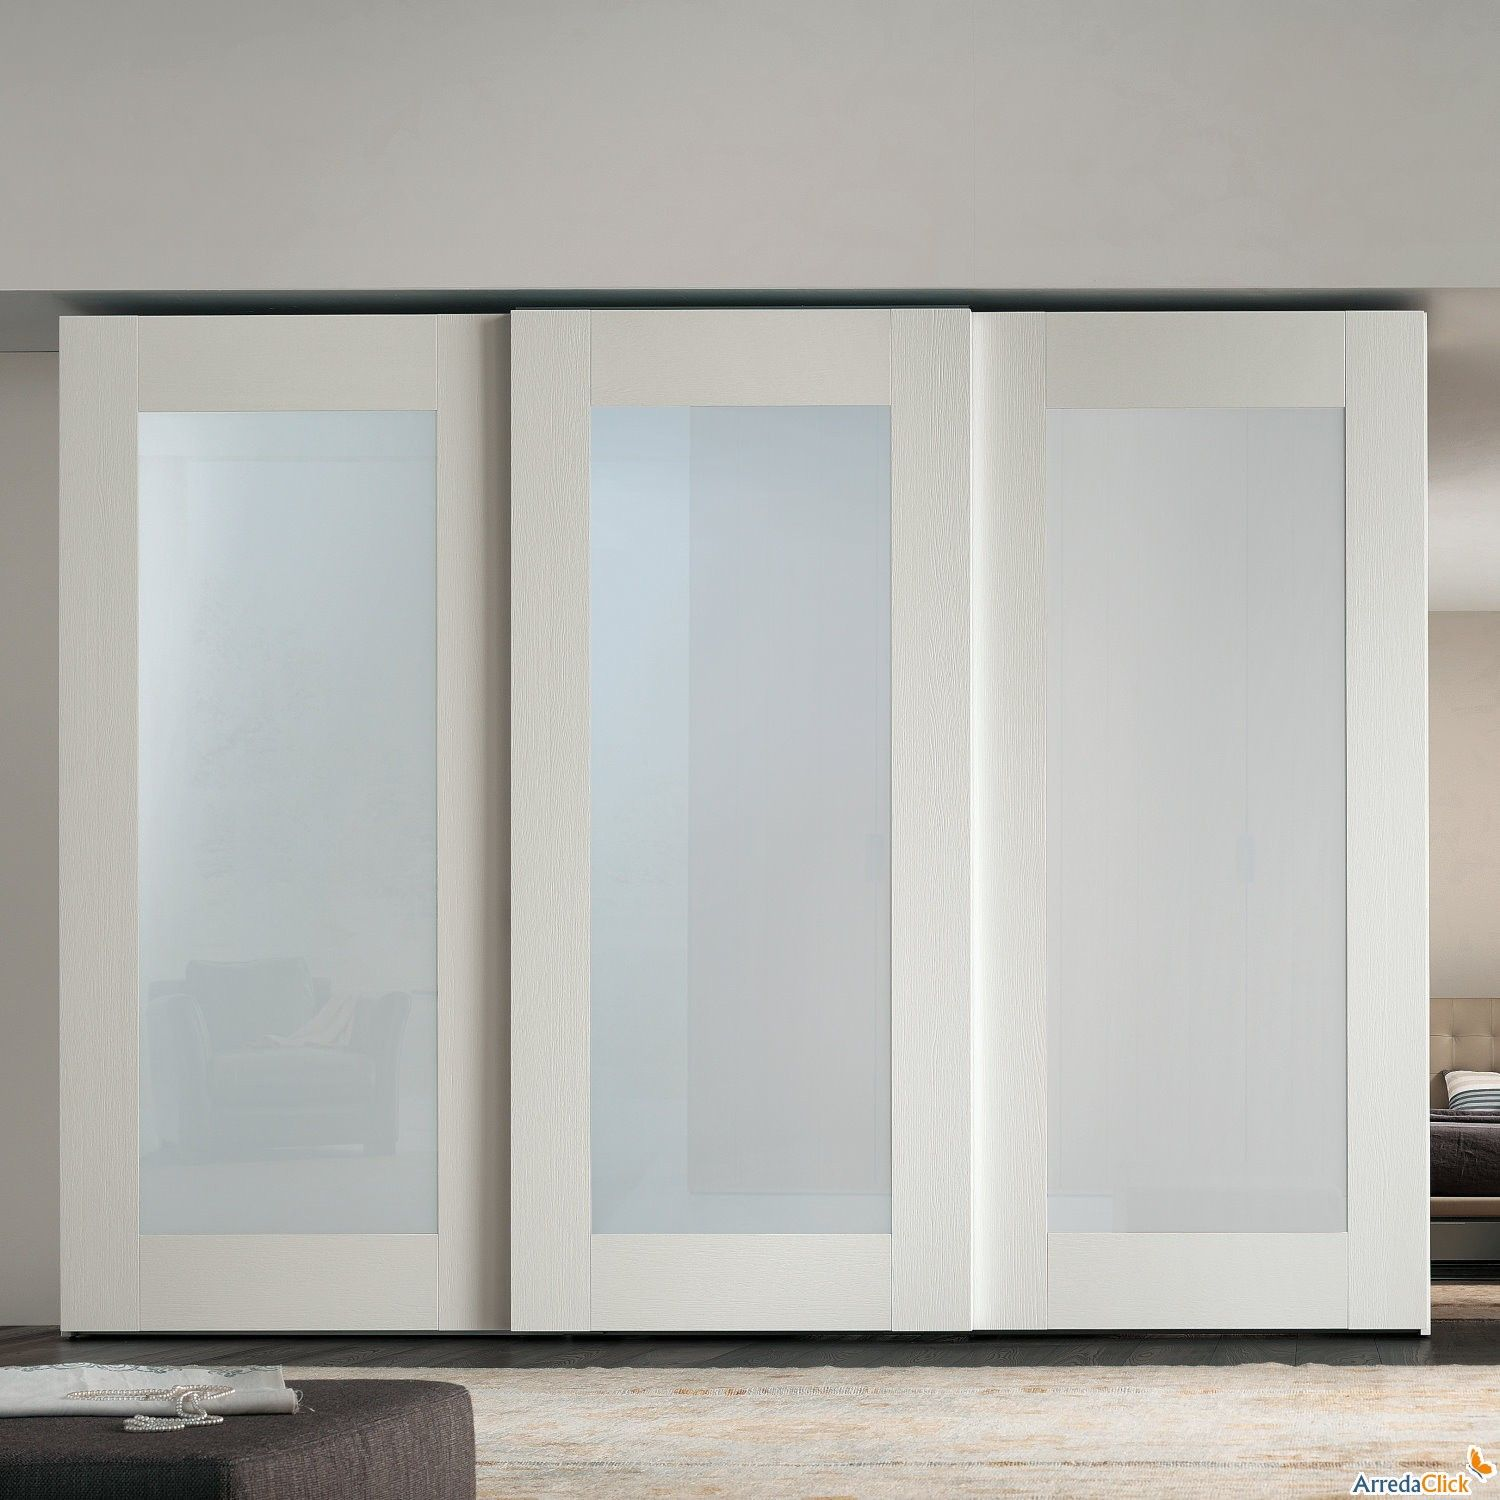 Charming Appealing Three Folding Sliding Glass Closet Doors With Sliding Closet Doors Lowes Plus Ado Glass Closet Glass Closet Doors Sliding Glass Closet Doors